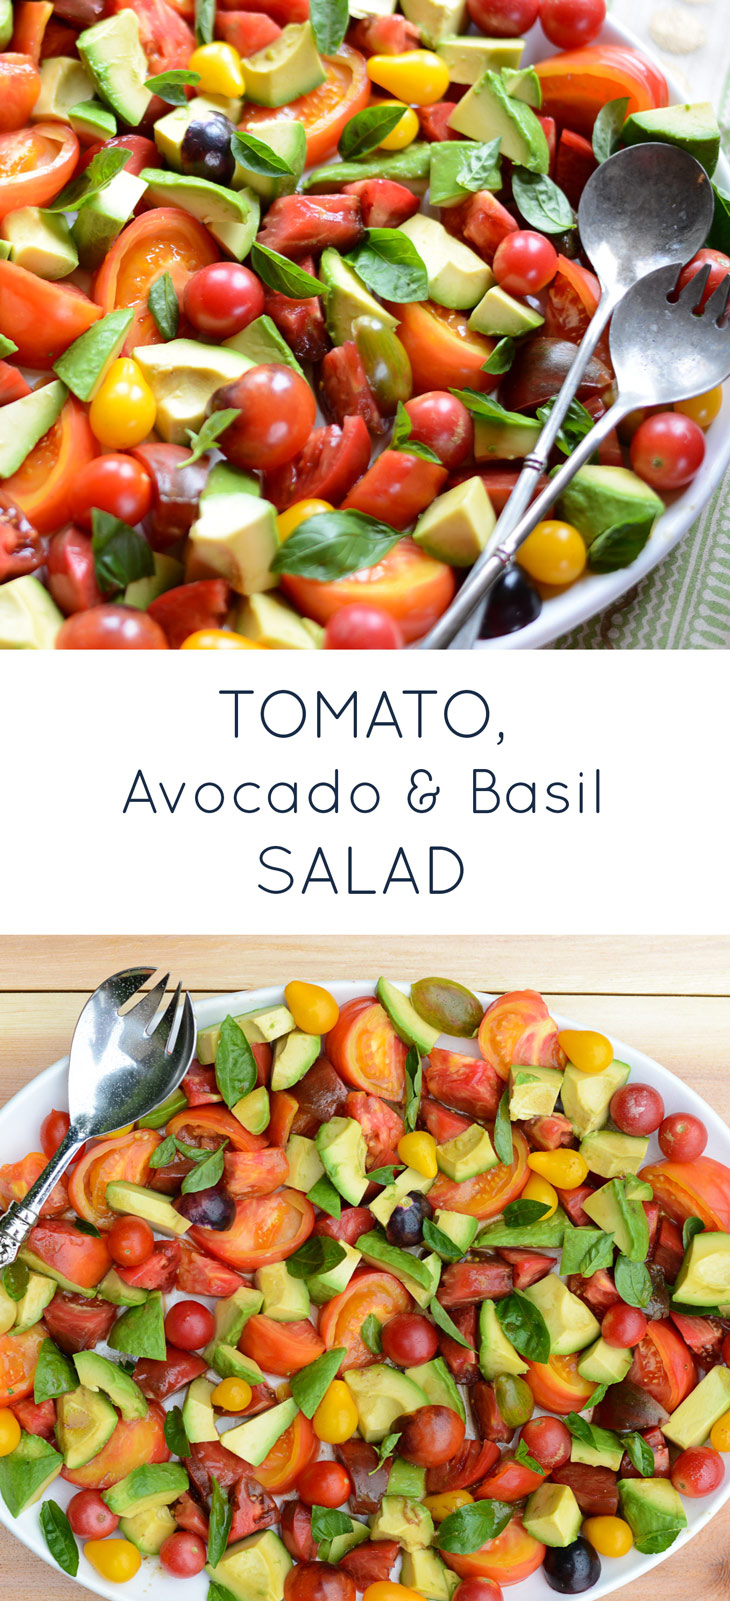 Tomato, Avocado & Basil Salad is a simple, flavorful healthy summer recipe. Gluten-free, dairy-free and paleo-friendly!